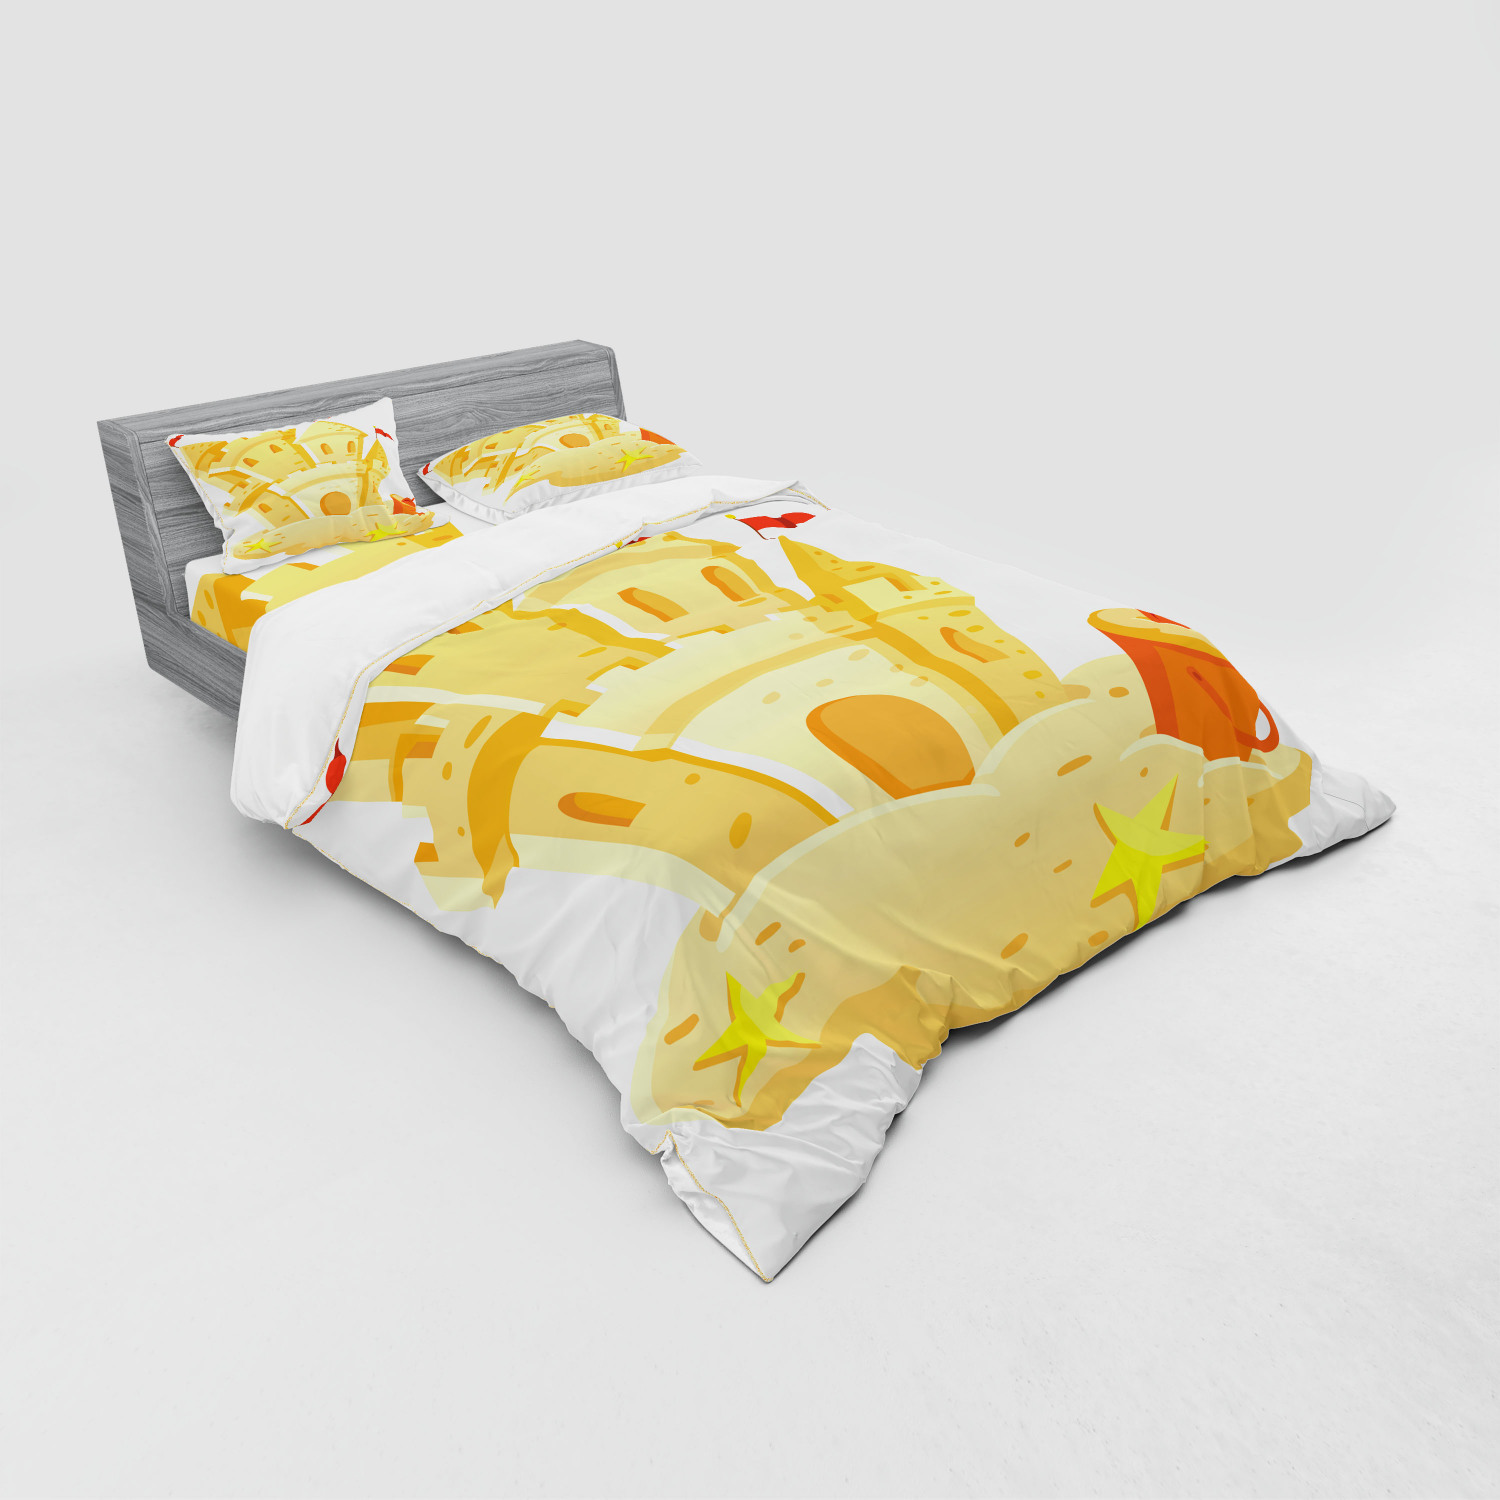 thumbnail 167 - Ambesonne Summer Bedding Set Duvet Cover Sham Fitted Sheet in 3 Sizes